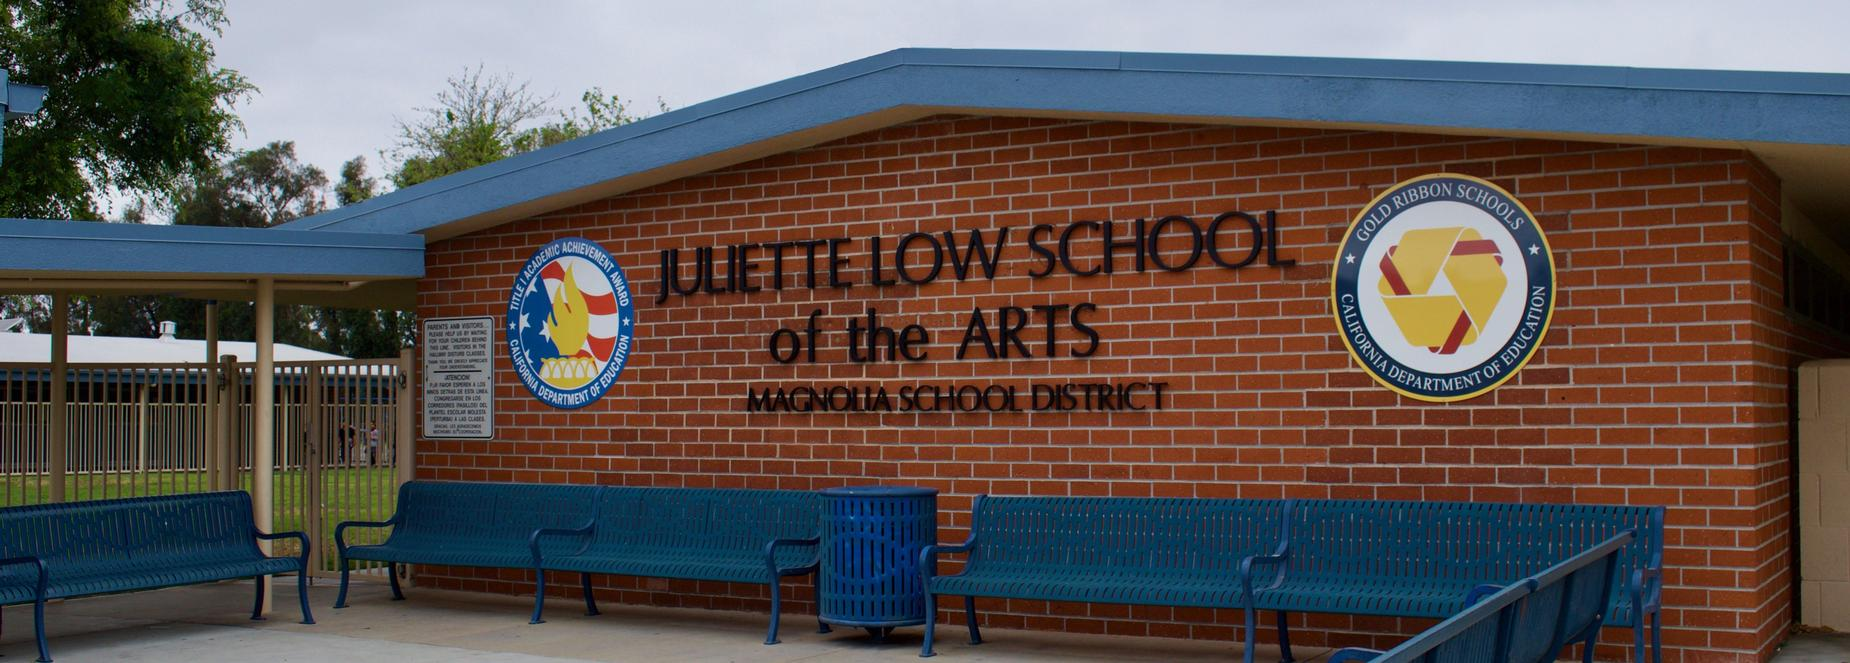 Juliette Low School Front View